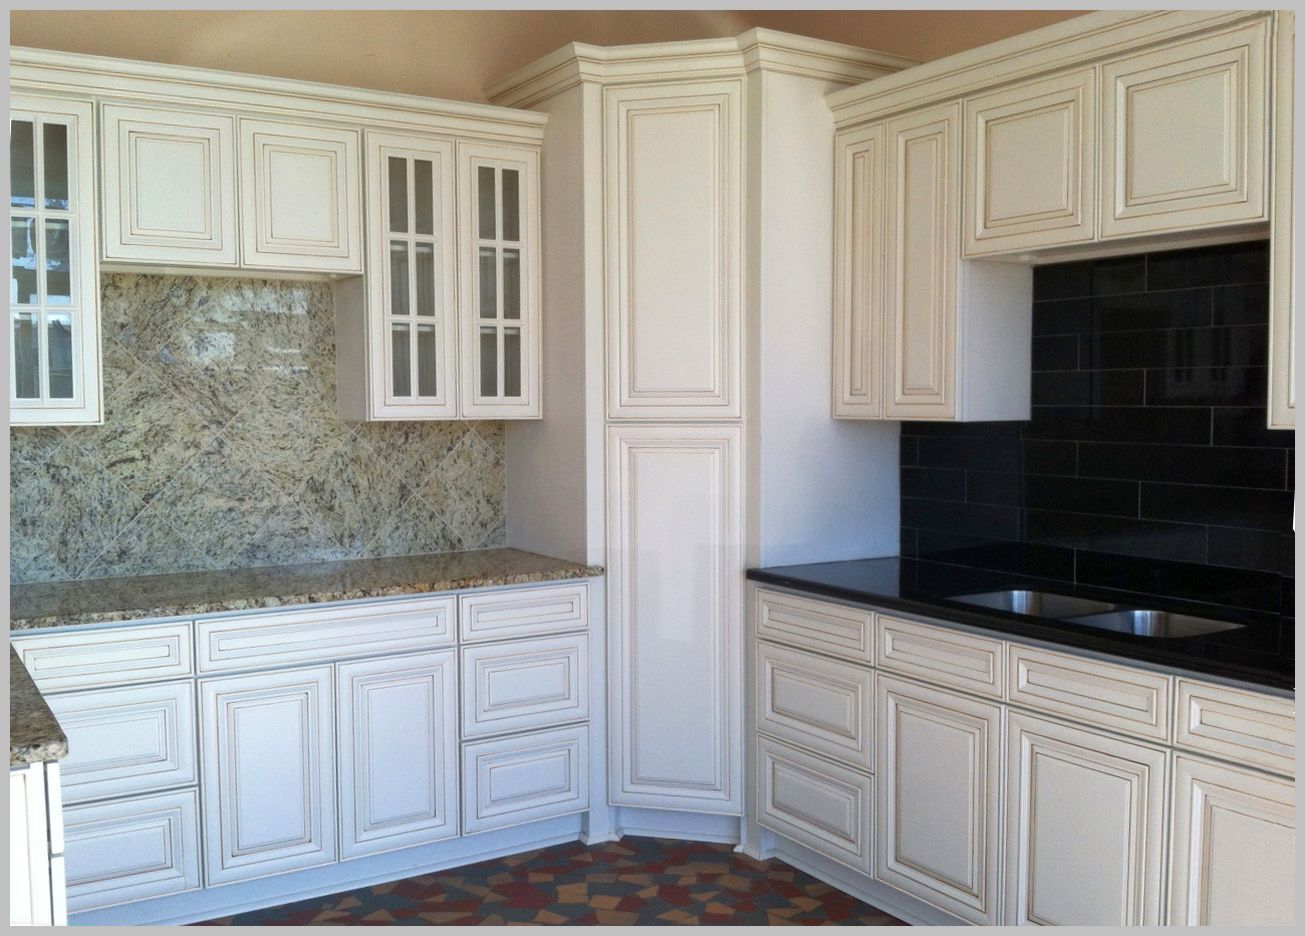 White-kitchen-cabinets-Lowes-Cool-Gallery.jpg (1305×936 ...